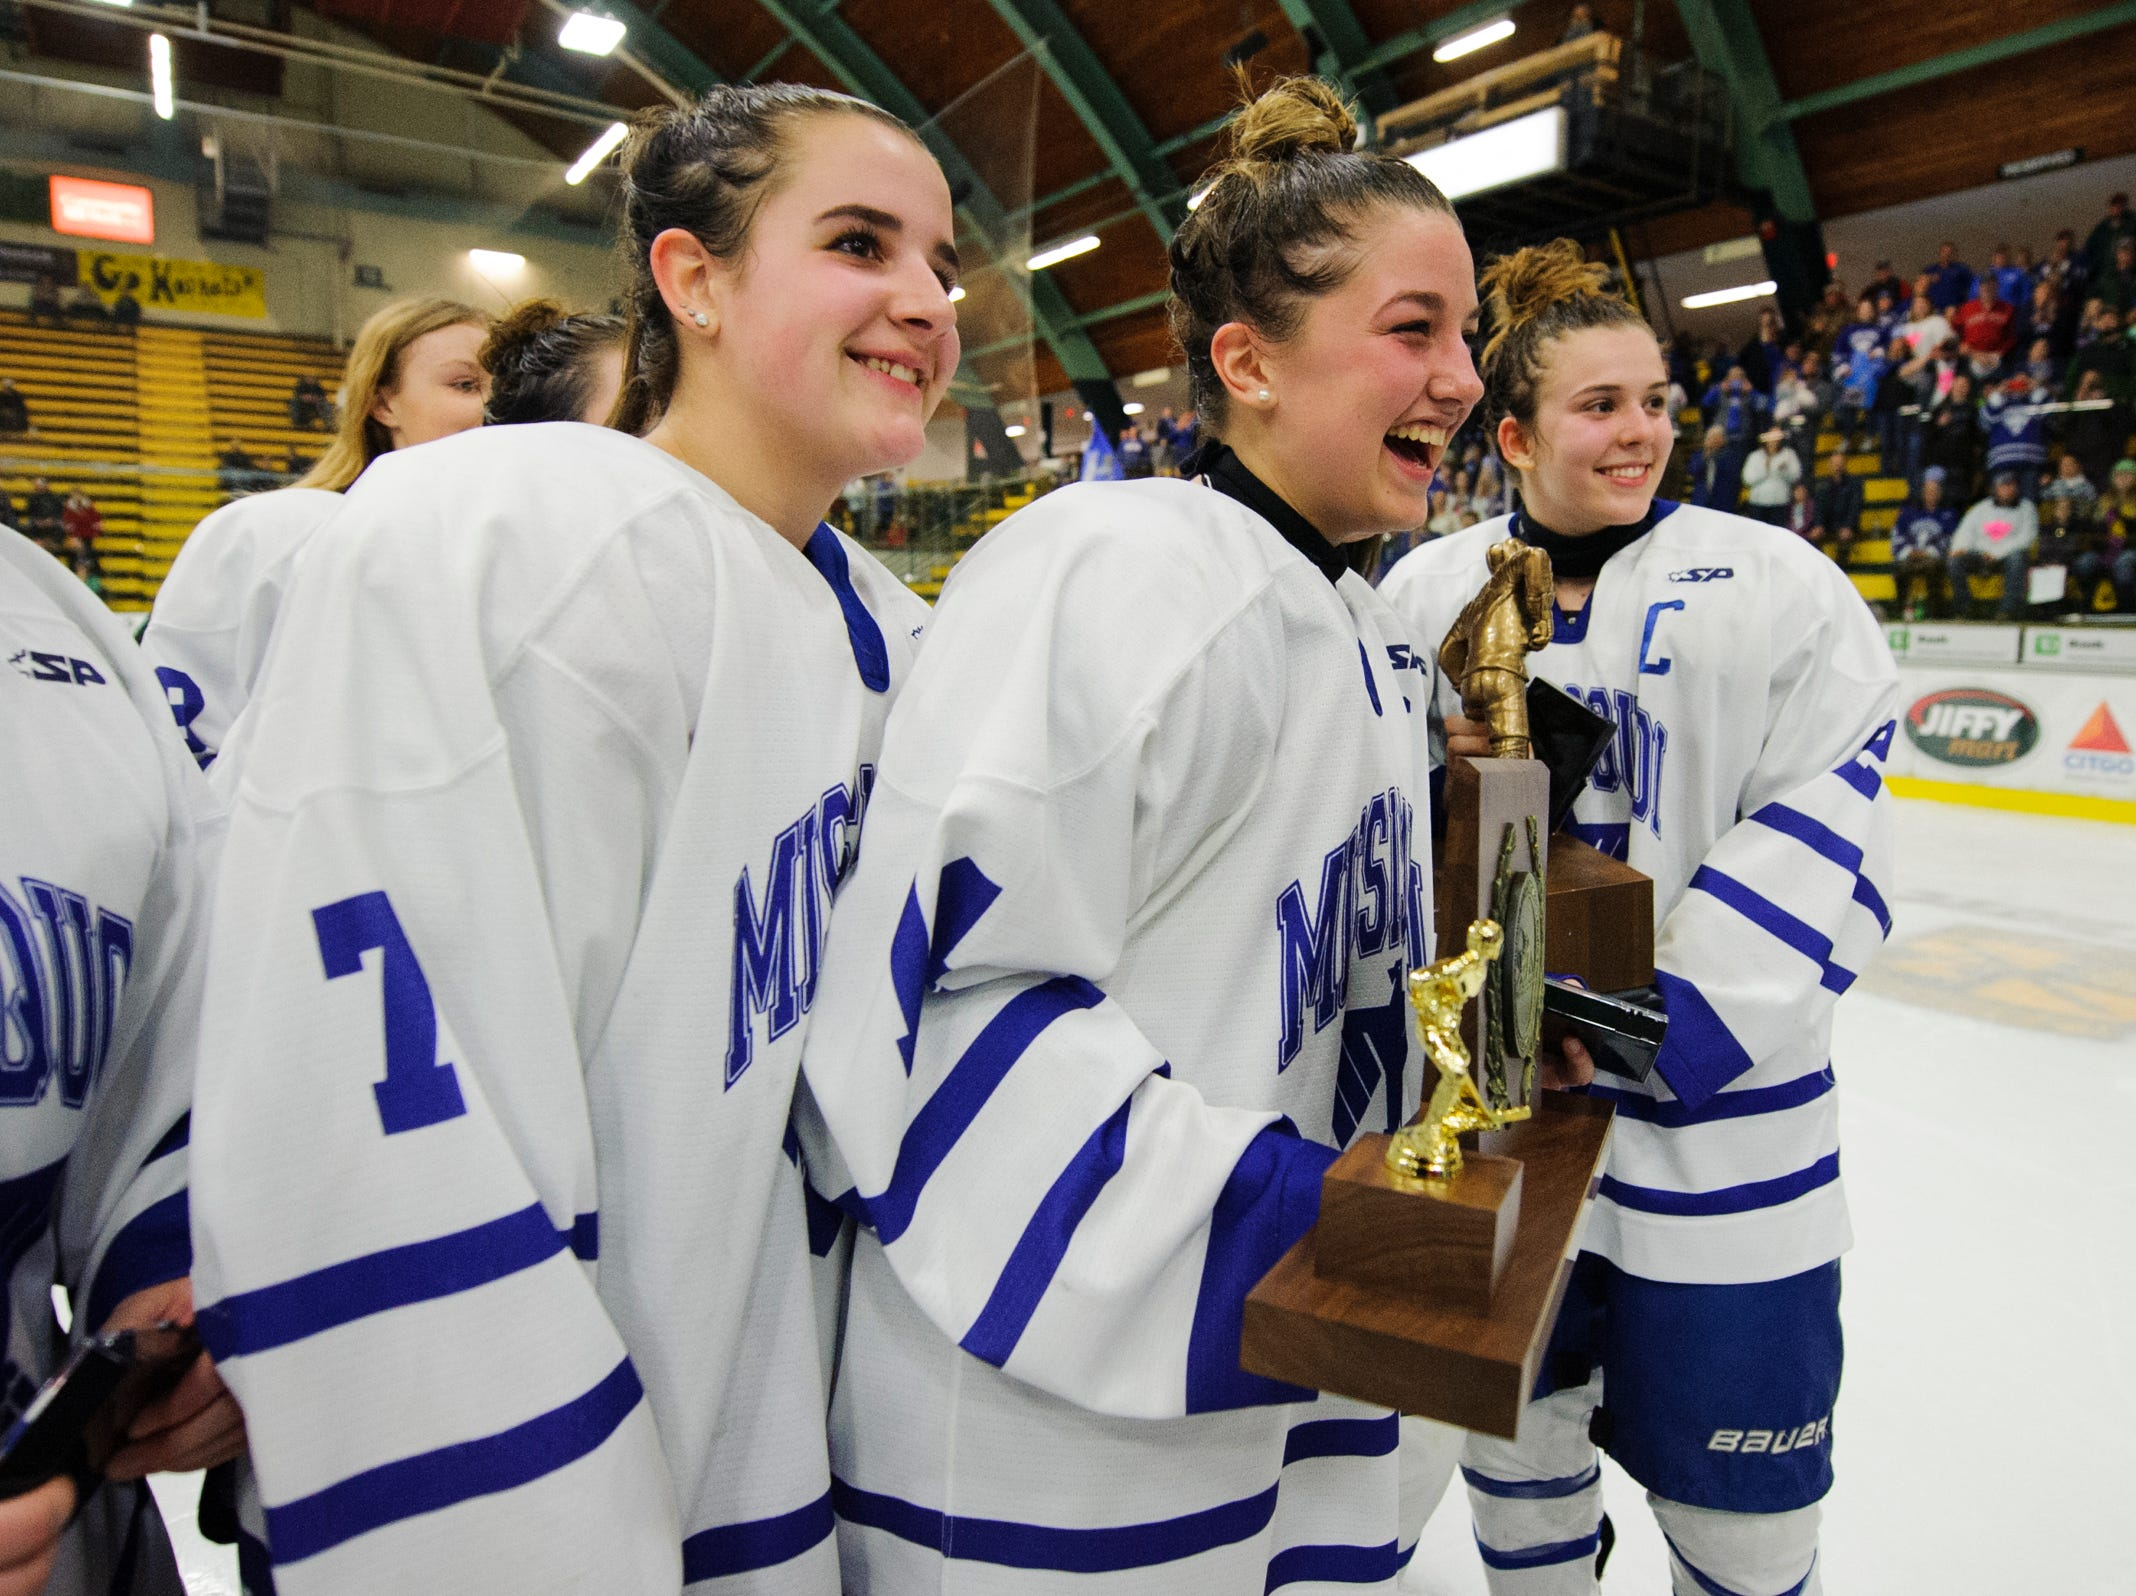 Missisquoi celebrates the championship during the DII girls hockey championship game between the Woodstock Wasps and the Missisquoi Thunderbirds at Gutterson Field House on Thursday night March 14, 2019 in Burlington, Vermont.